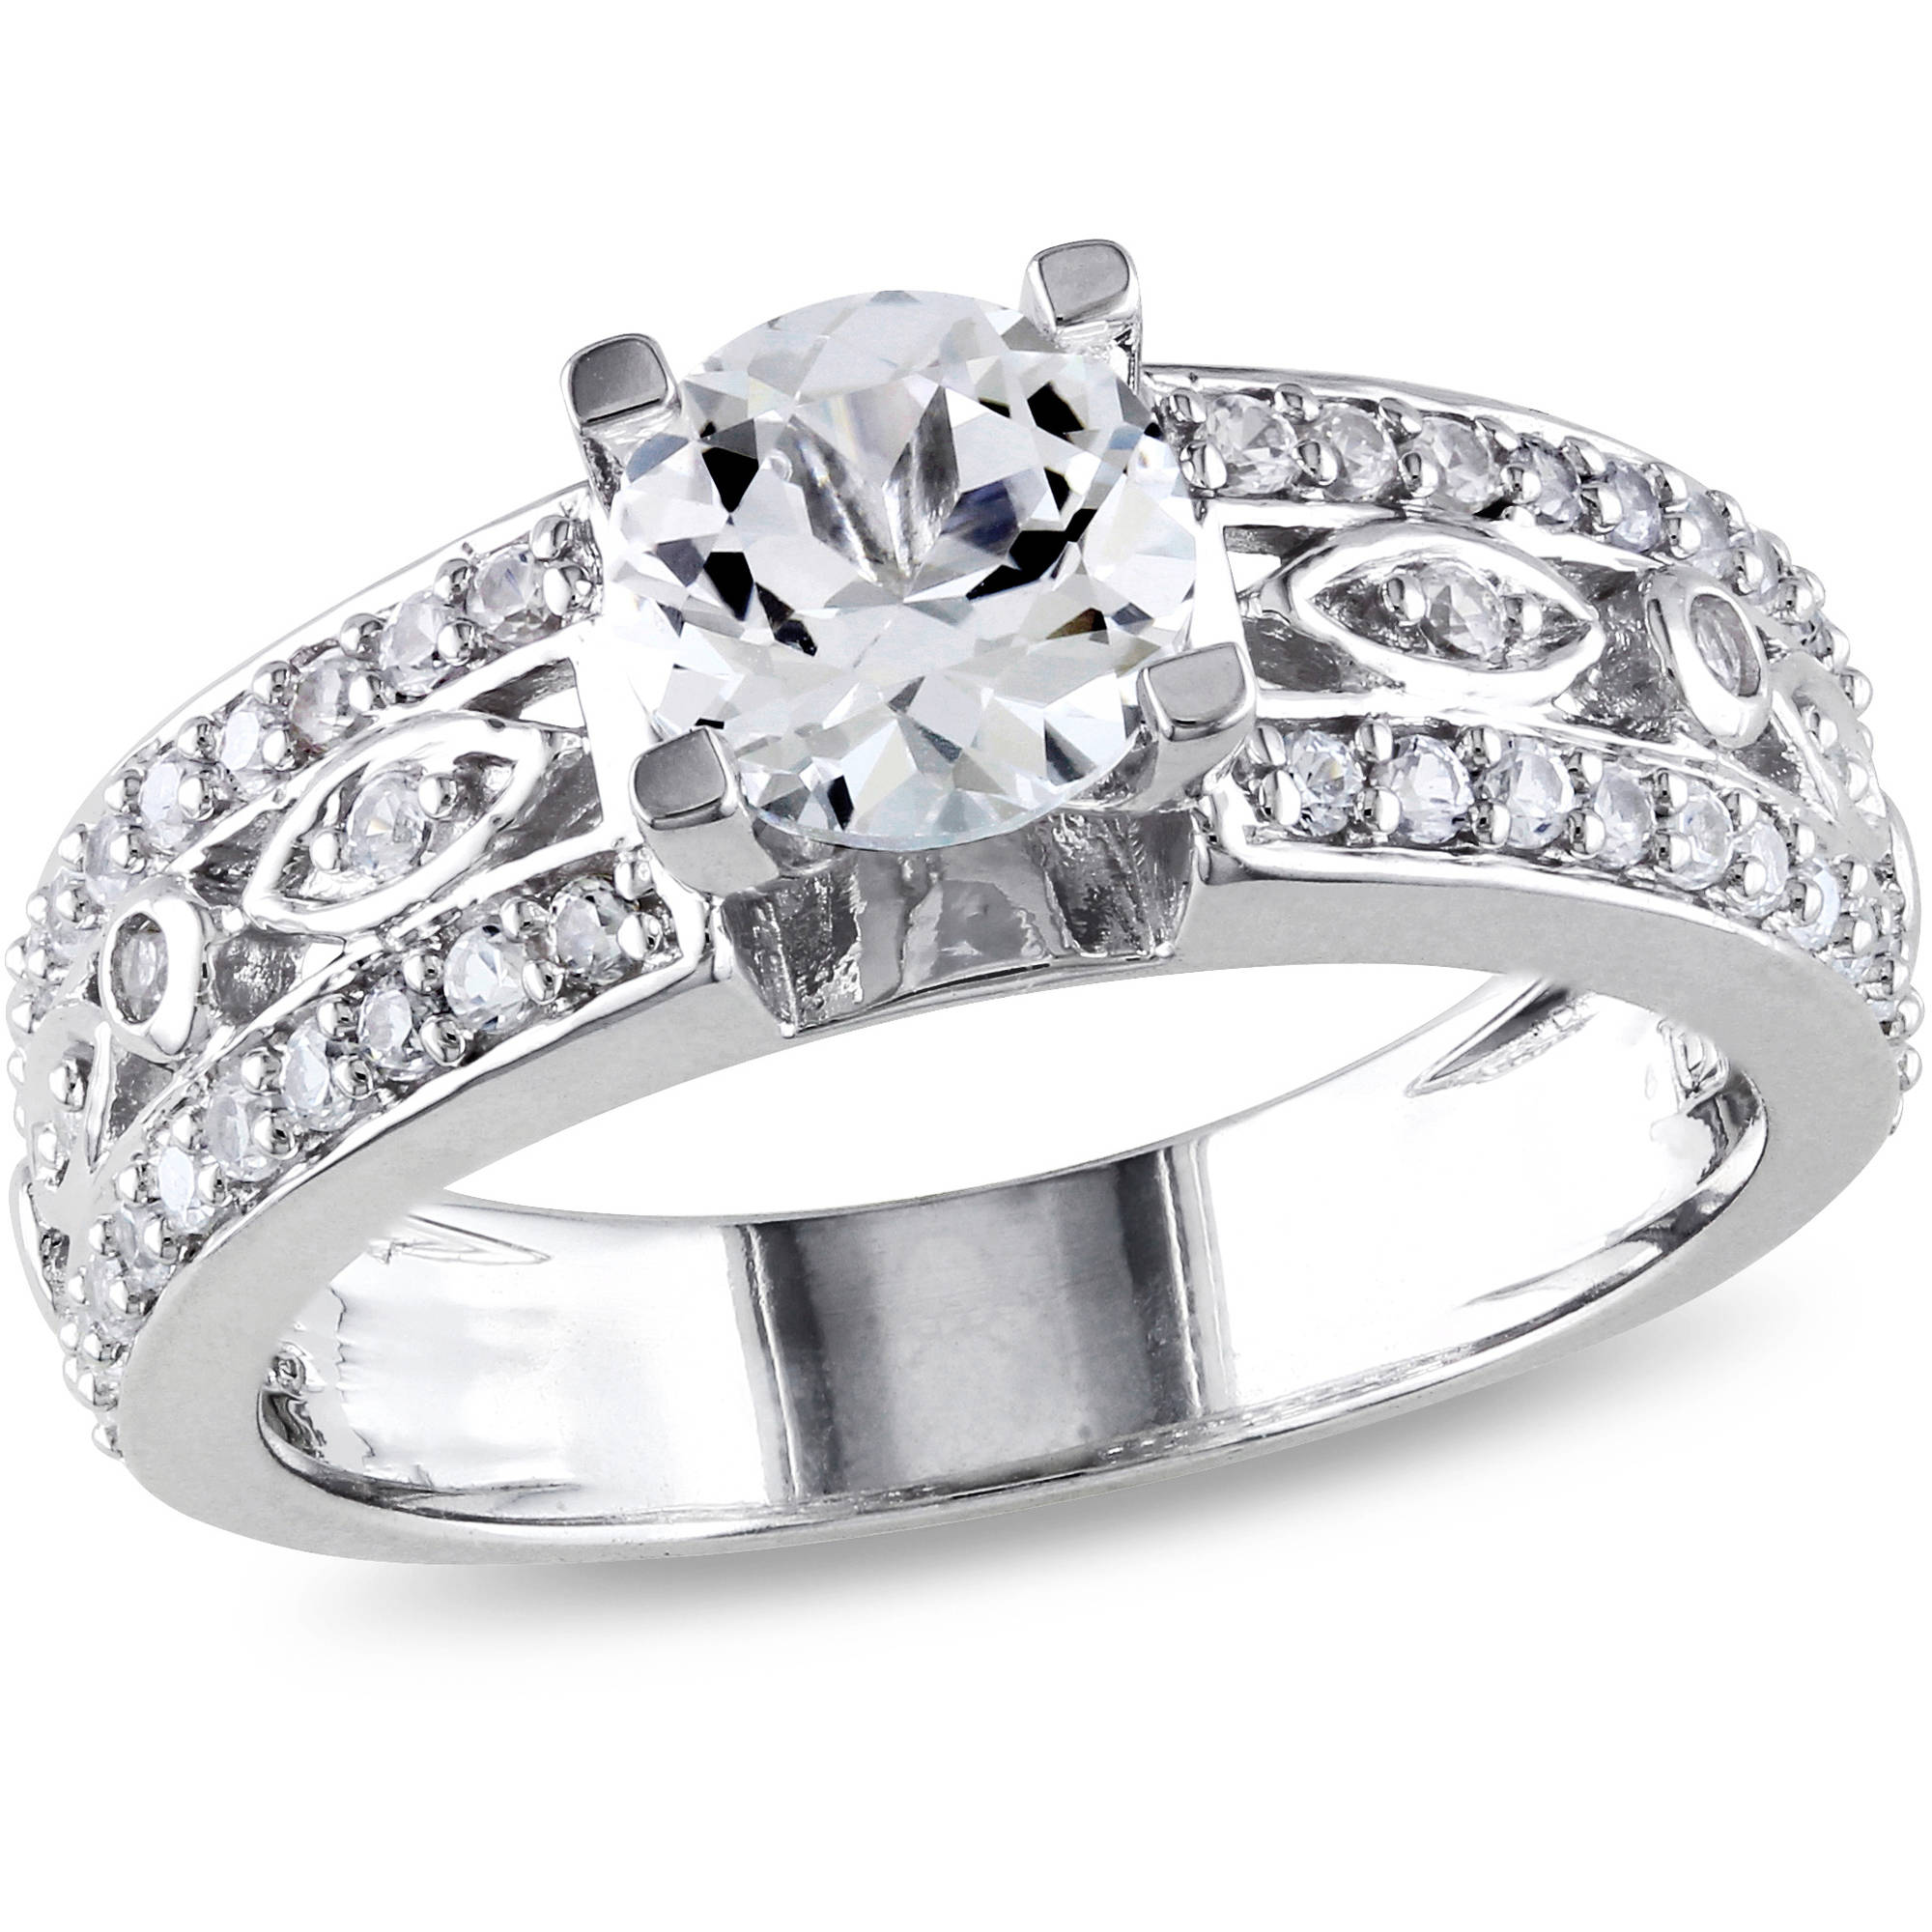 Miabella 1-7/8 Carat T.G.W. White Sapphire Sterling Silver Engagement Ring